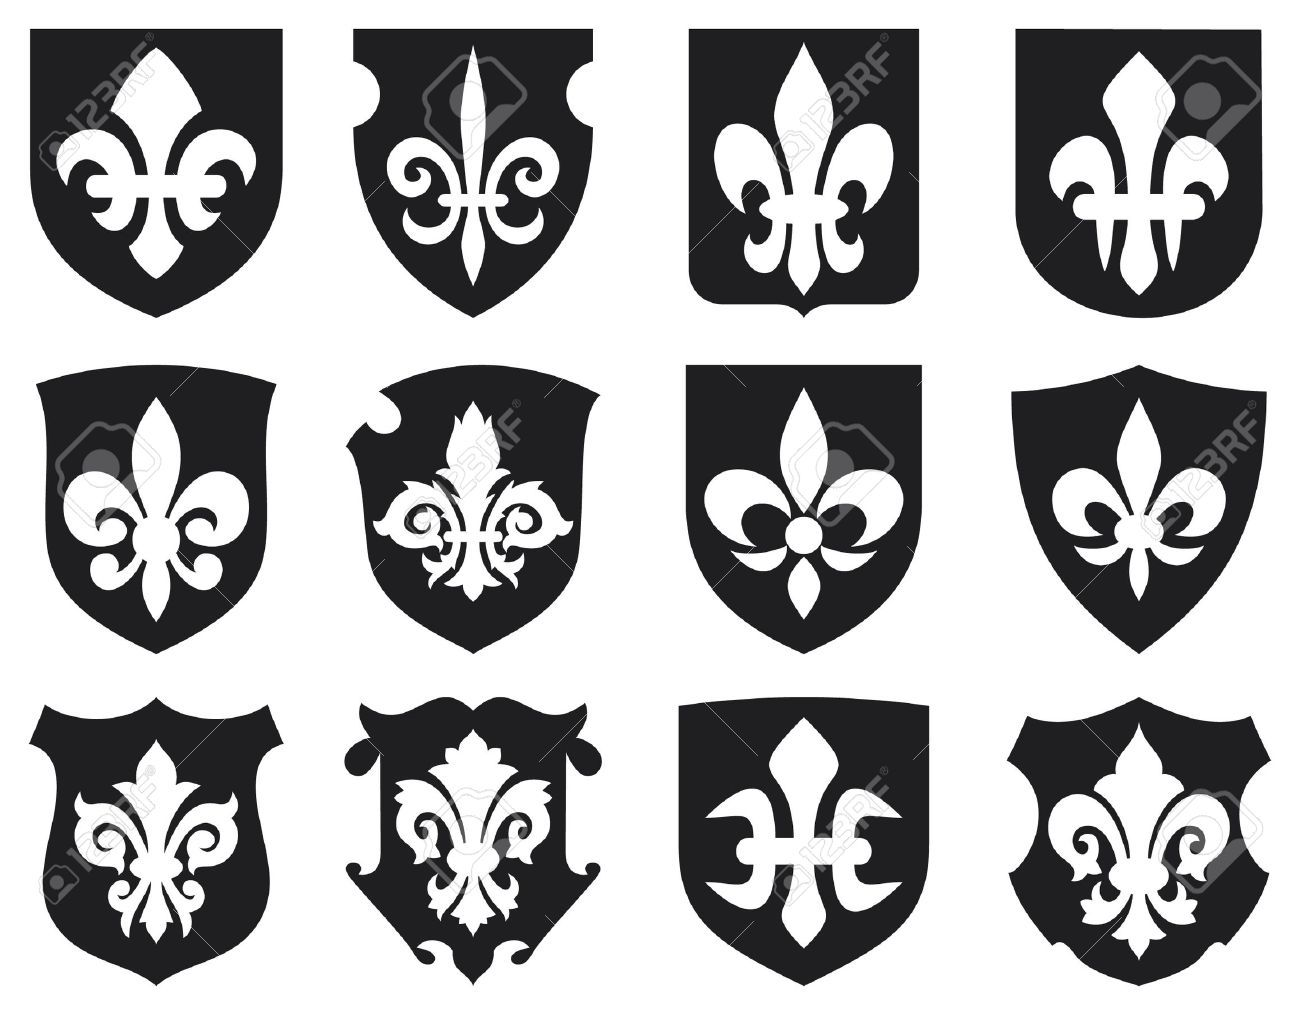 15686820 lily flower heraldic symbol fleur de lis and medieval lily flower heraldic symbol fleur de lis and medieval shields royal french lily symbols for design and decorate lily flowers collection lily flowers set buycottarizona